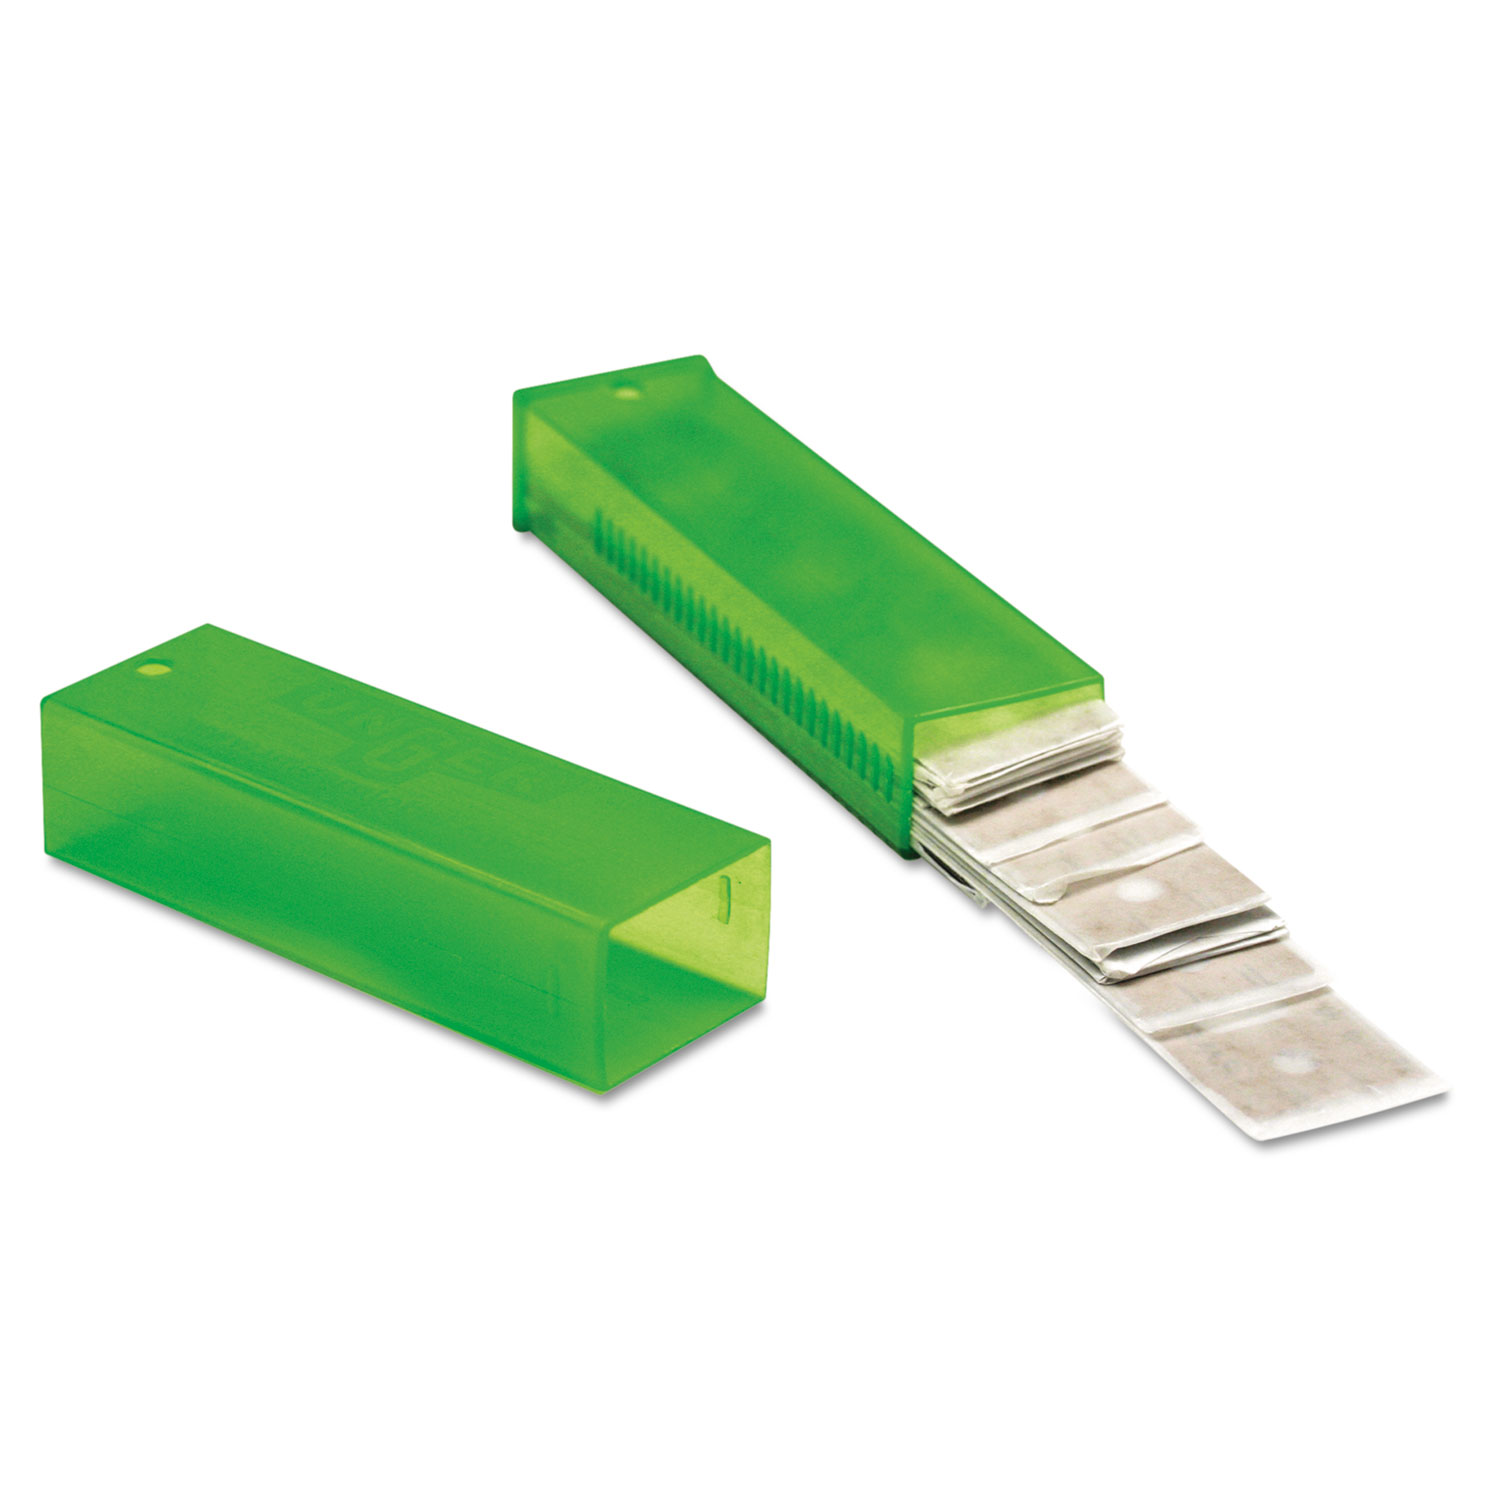 ErgoTec Glass Scraper Replacement Blades, 4